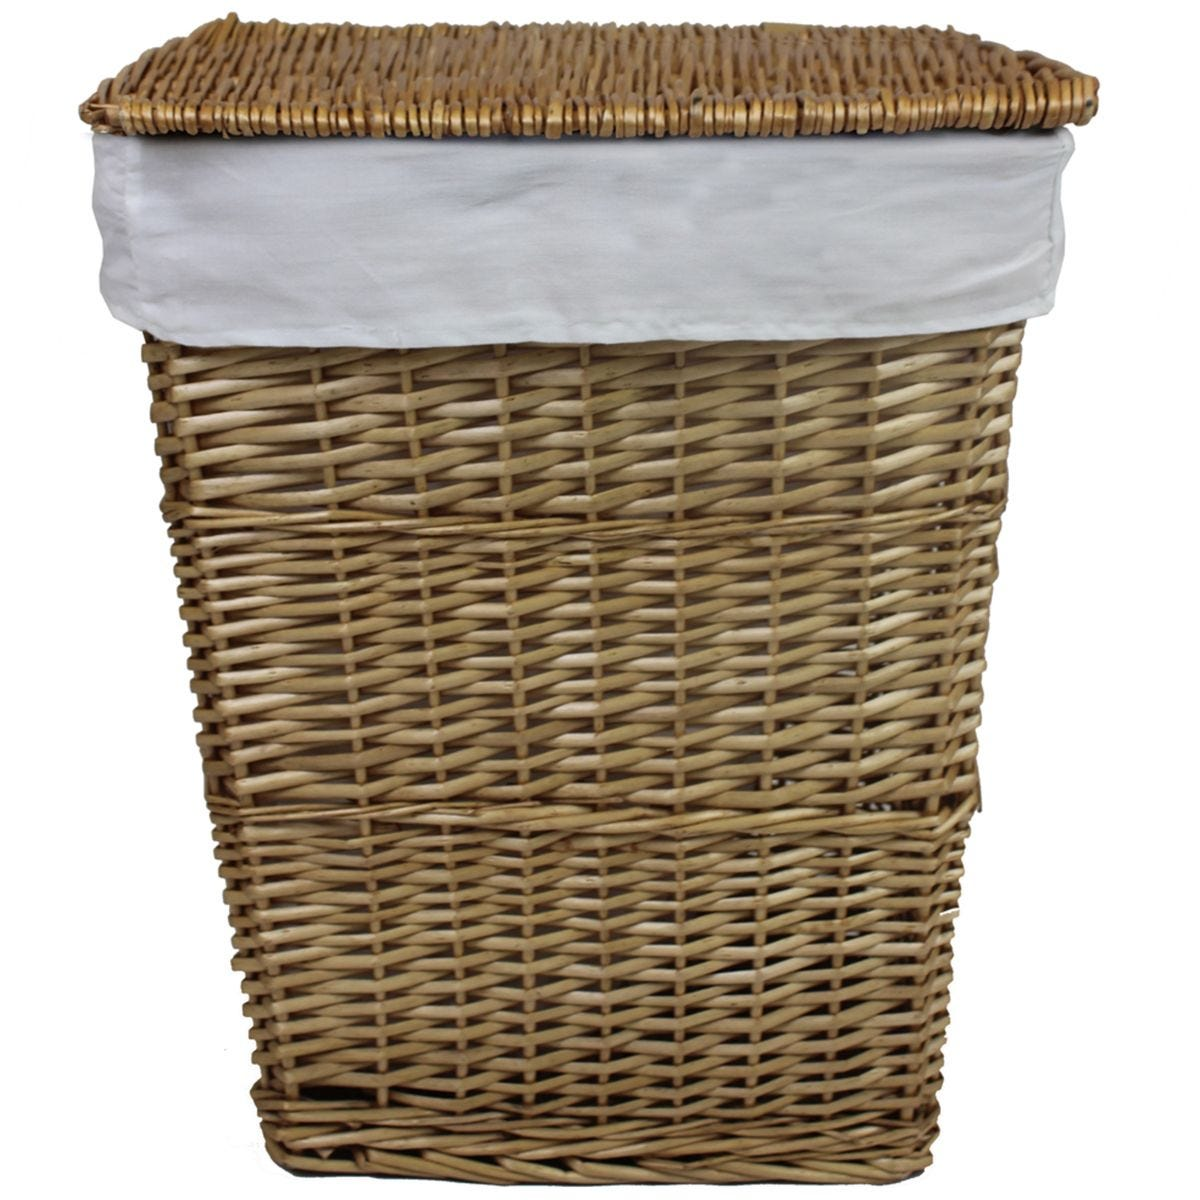 JVL Classic Honey Tapered Willow Wicker Lined Washing Linen Laundry Basket 57 x 45 x 32 cm